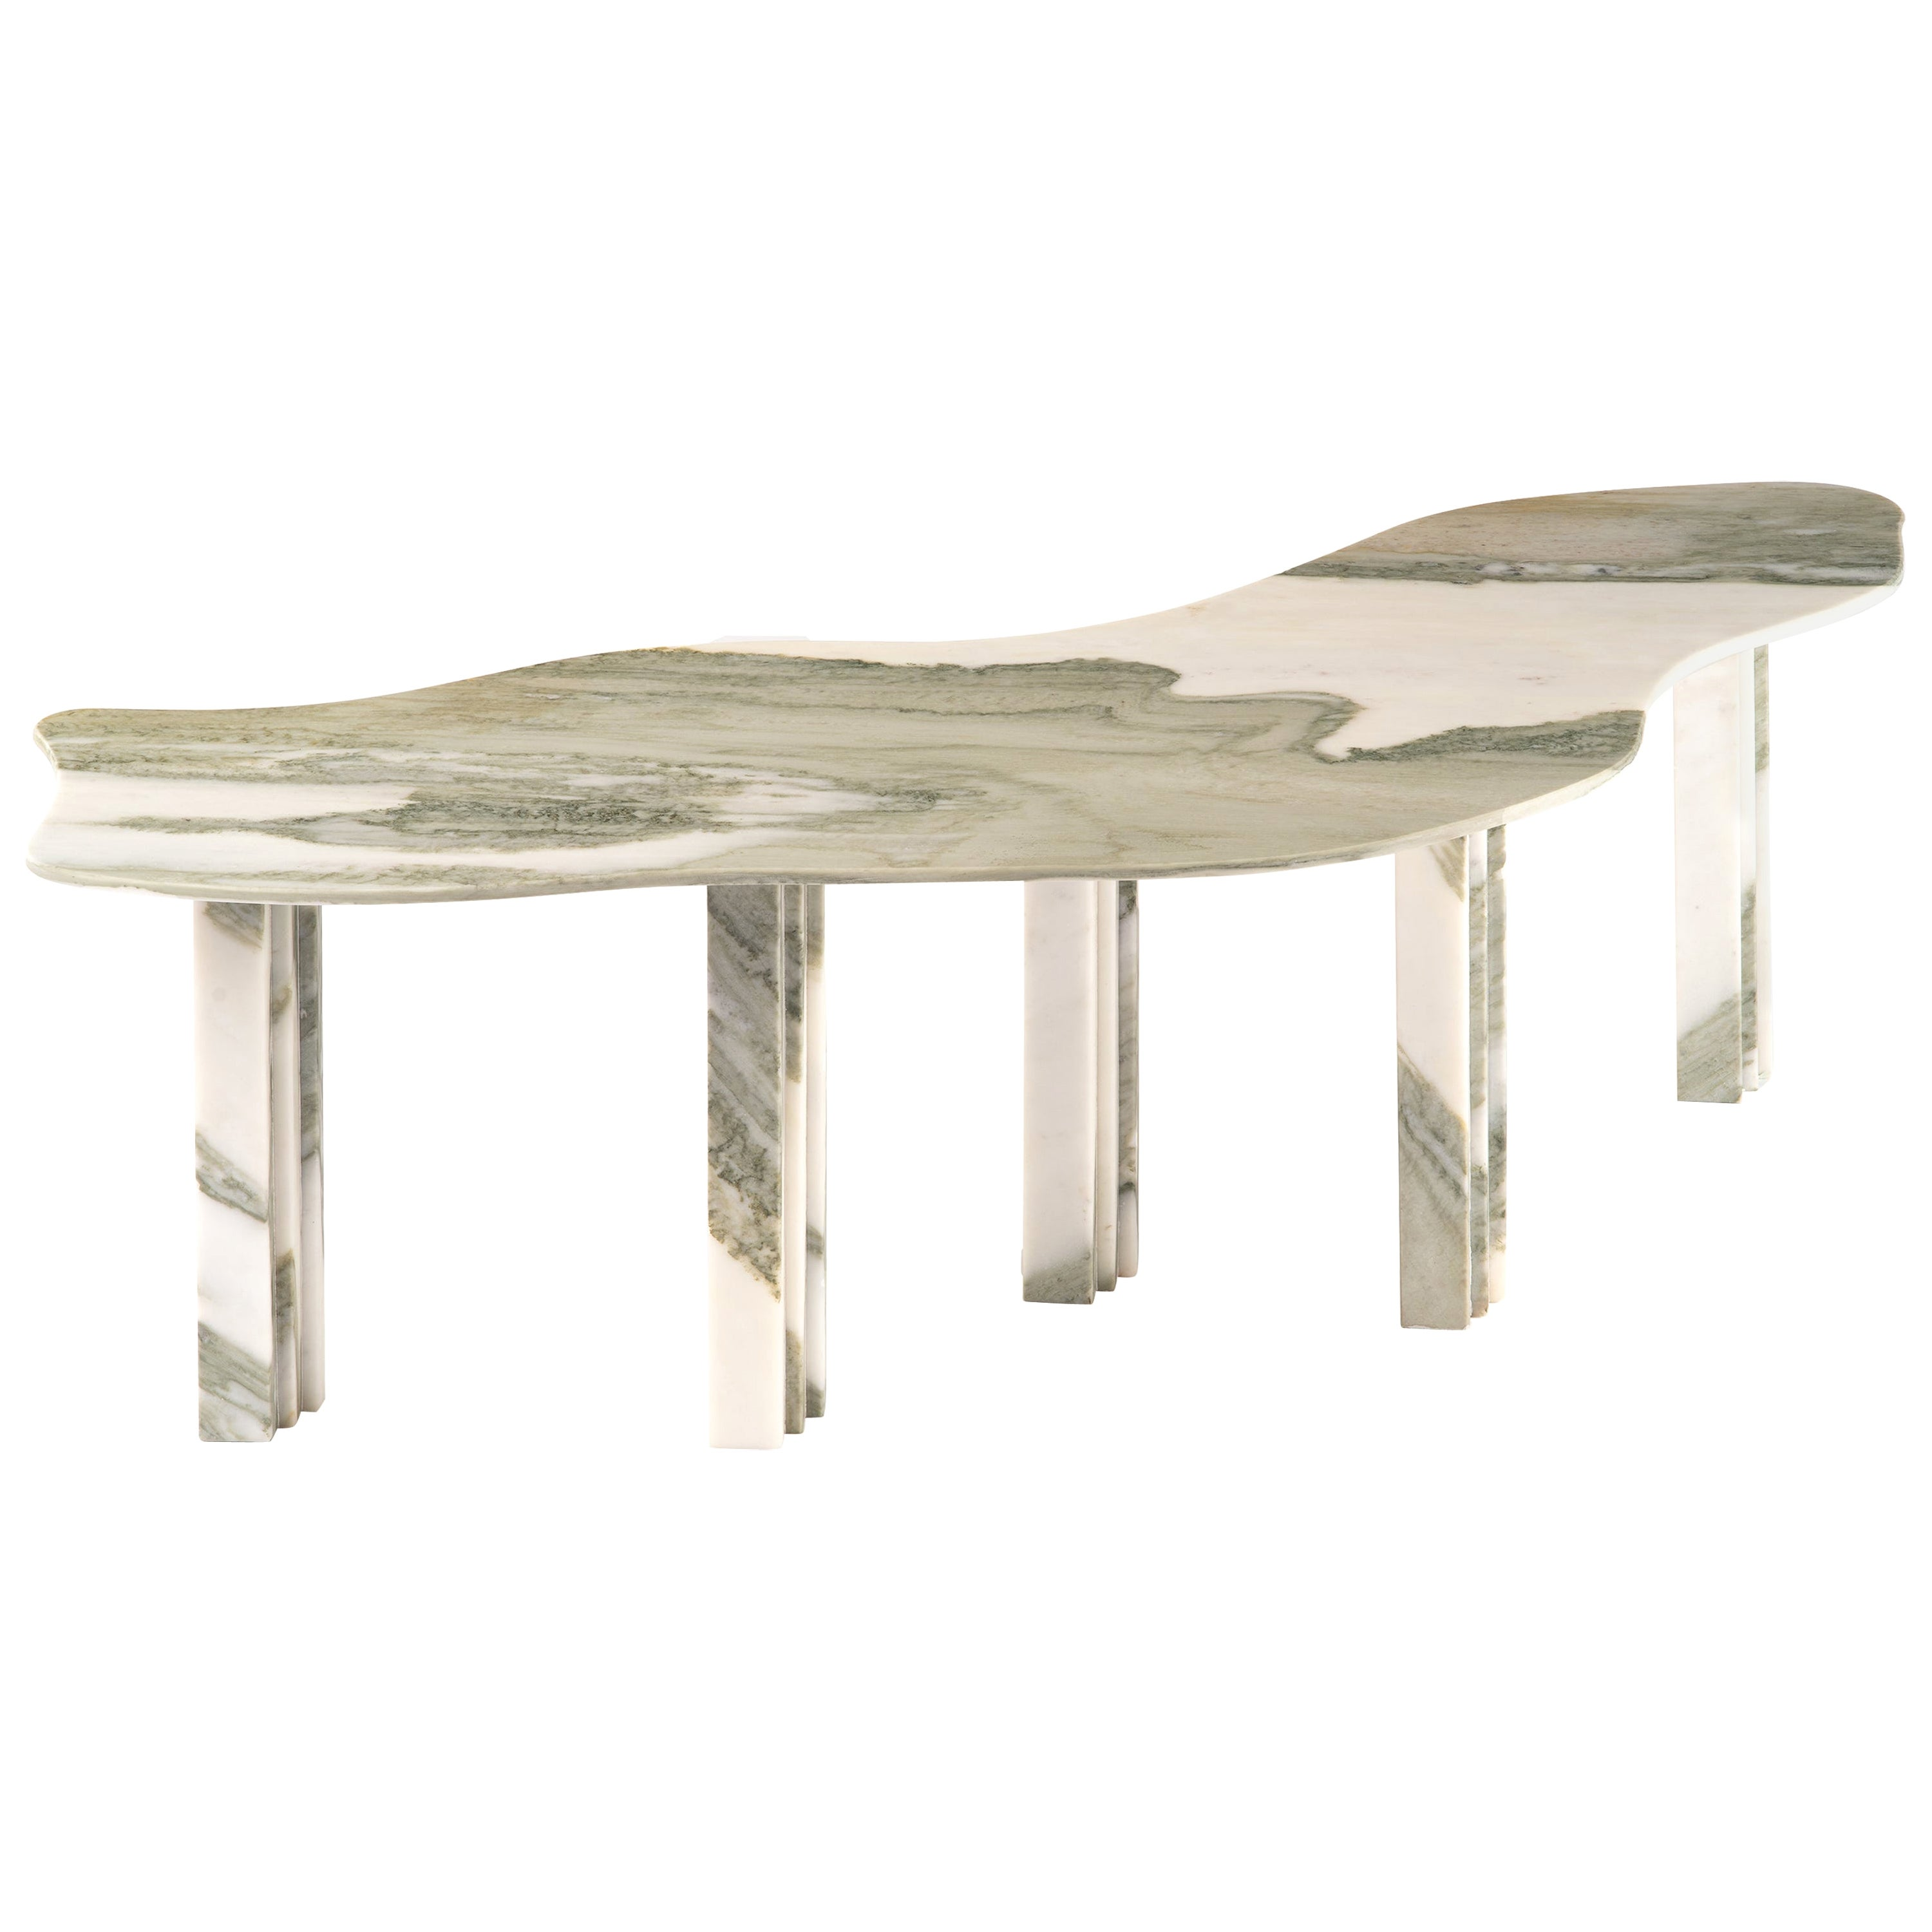 Bicolor Sculptural Dining Marble Table Signed by Lorenzo Bini